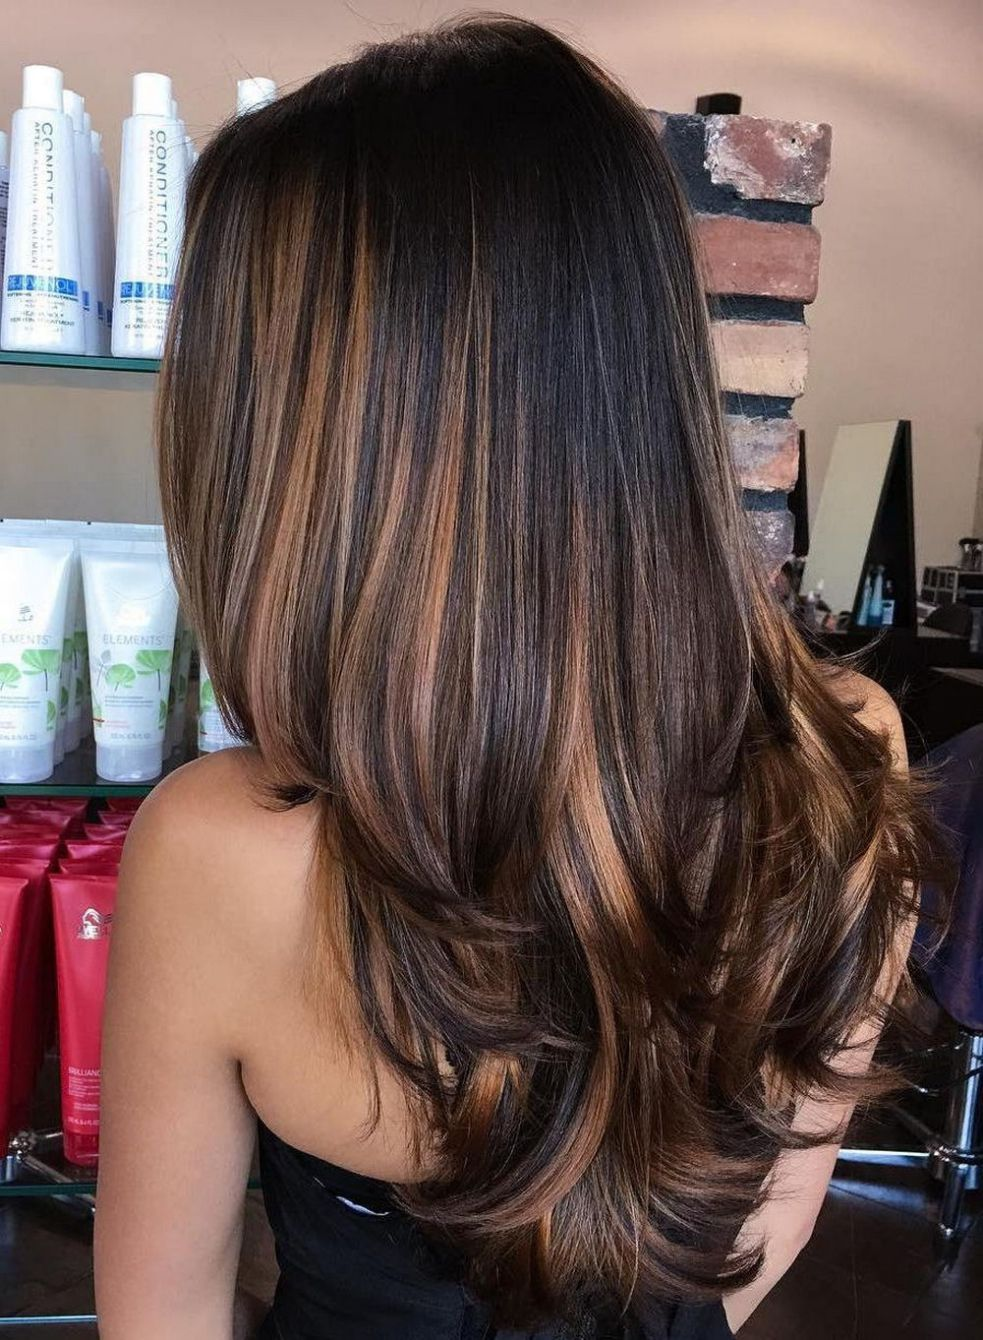 70 Flattering Balayage Hair Color Ideas For 2020 Balayage Hair Hair Styles Hair Color Balayage